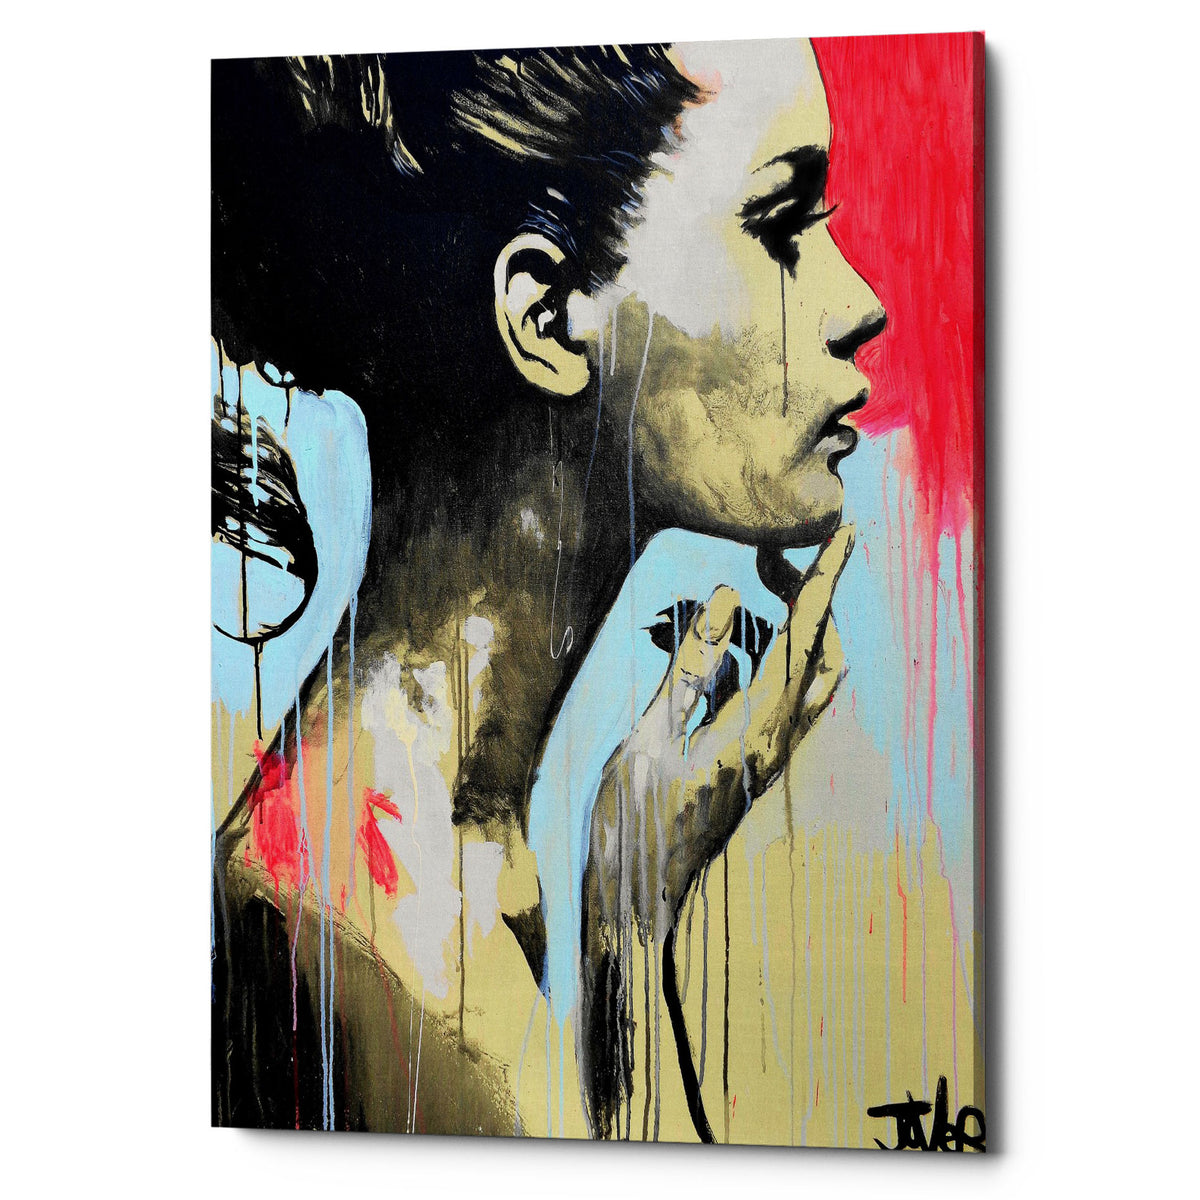 "Epic Graffiti ""Perhaps"" by Loui Jover, Giclee Canvas Wall Art"